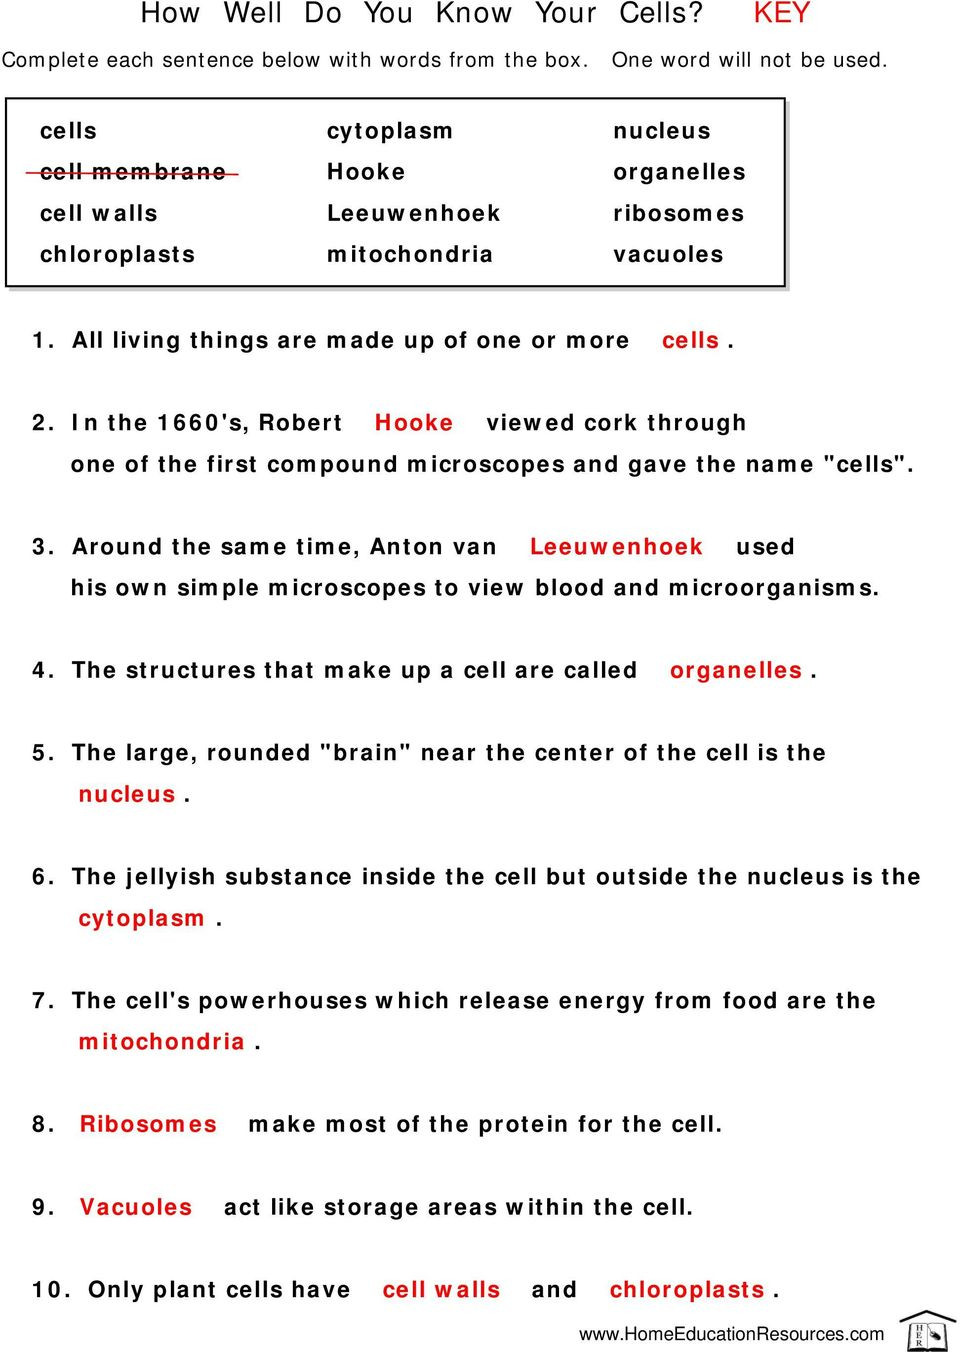 Cell organelles Worksheet Middle School How Well Do You Know Your Cells Pdf Free Download